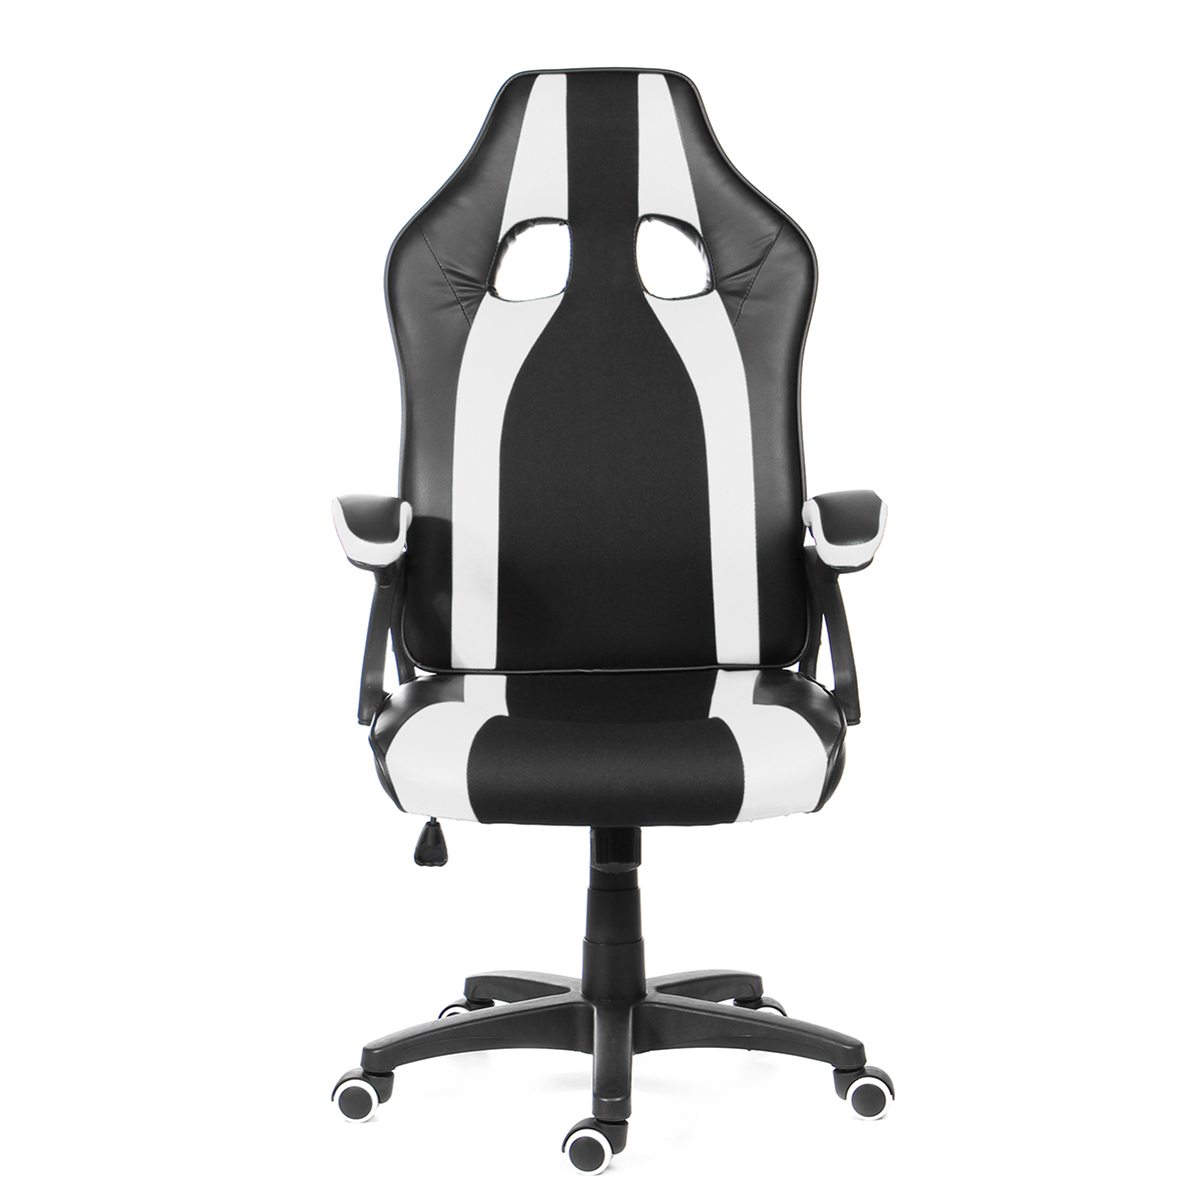 Furniture Office Chair Adjustable Leather Office Chair Gaming Chair Swivel Reclining Executive Laptop Desk Armchair